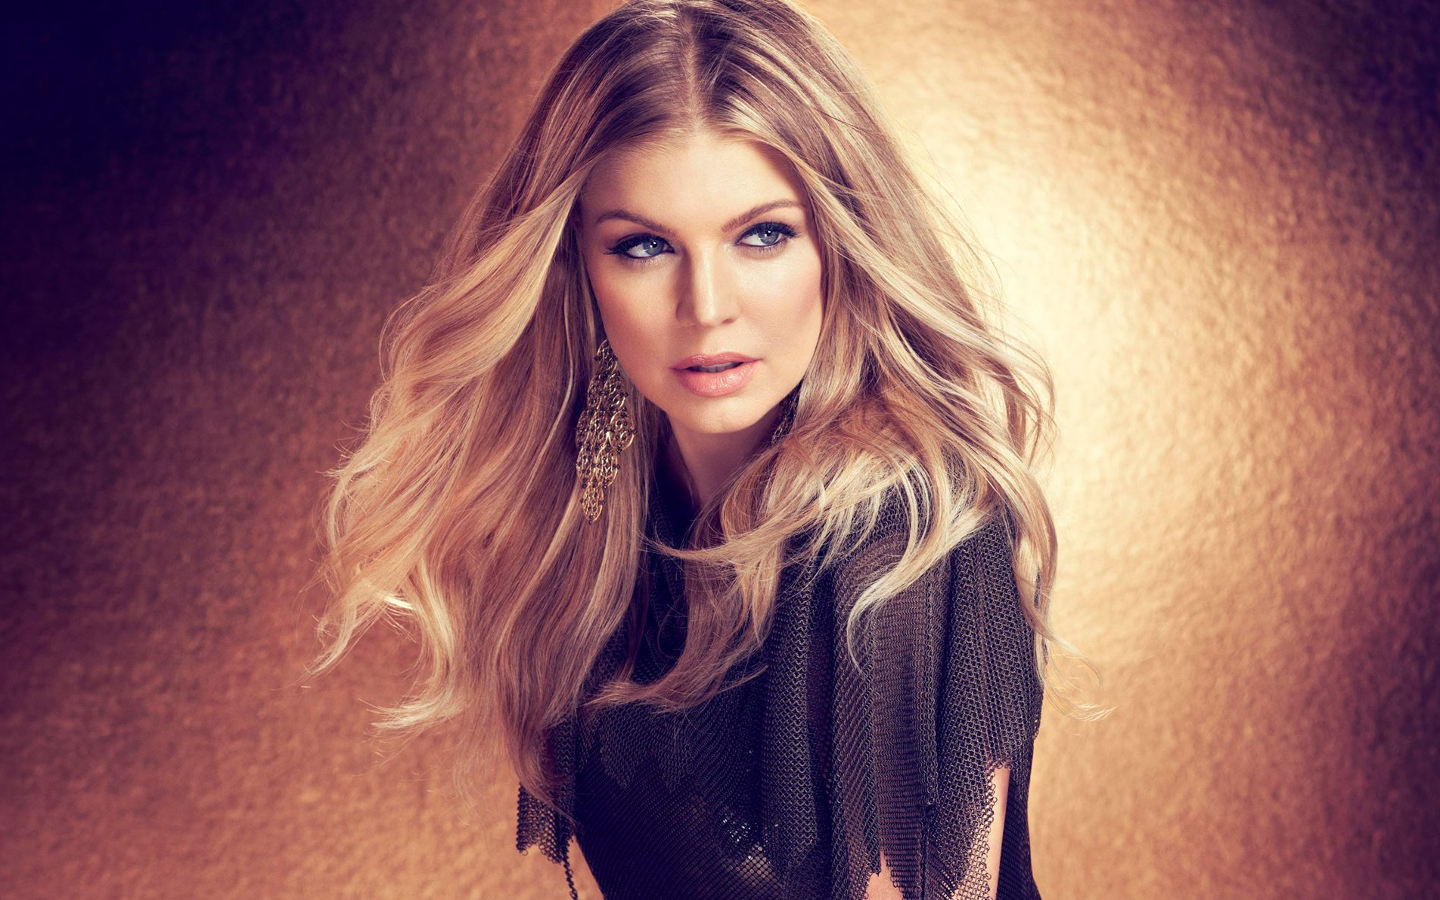 fergie london bridge espanol: